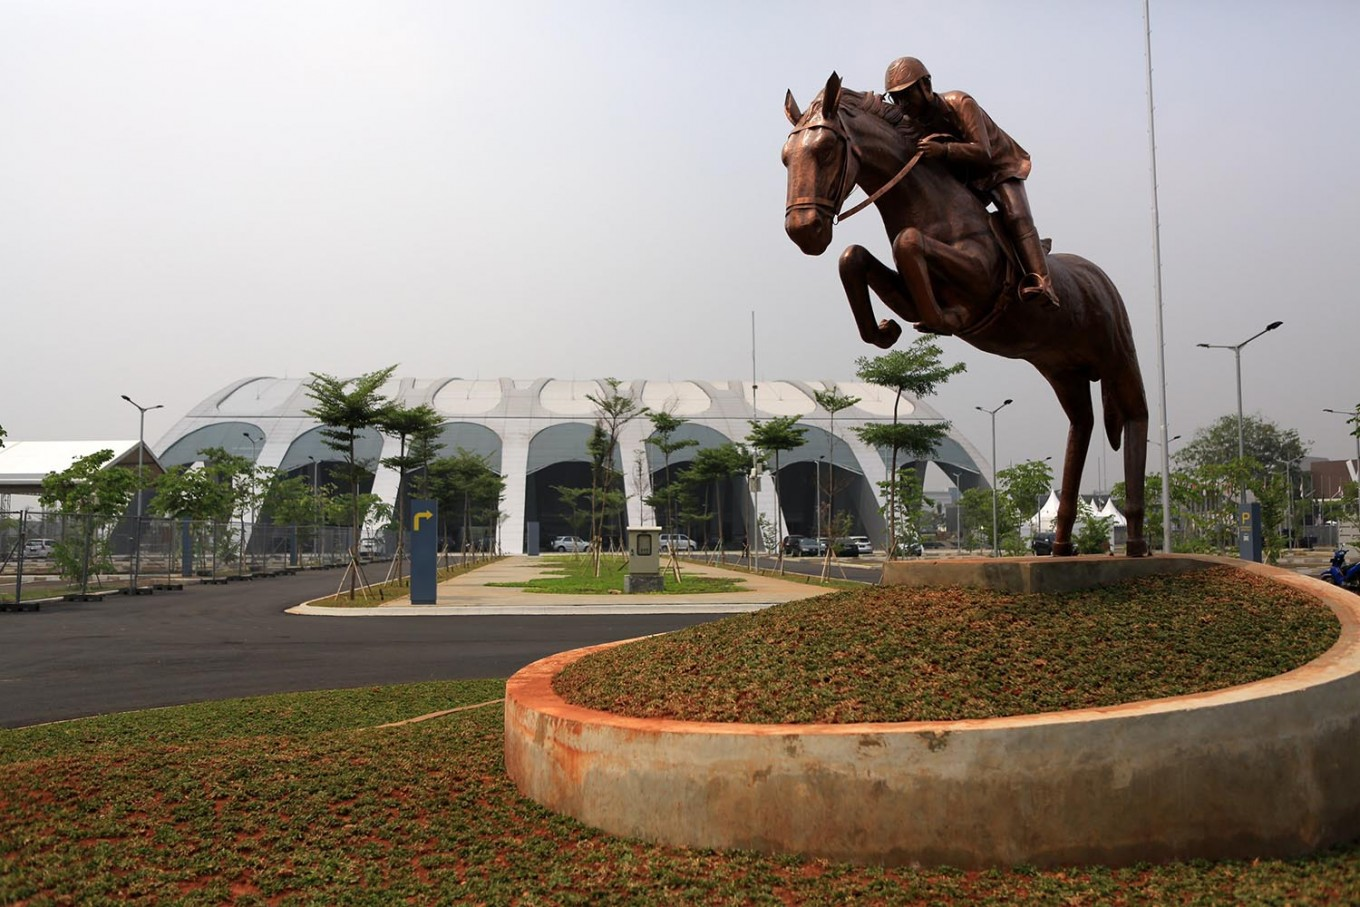 Equestrian center for Asian Games inaugurated